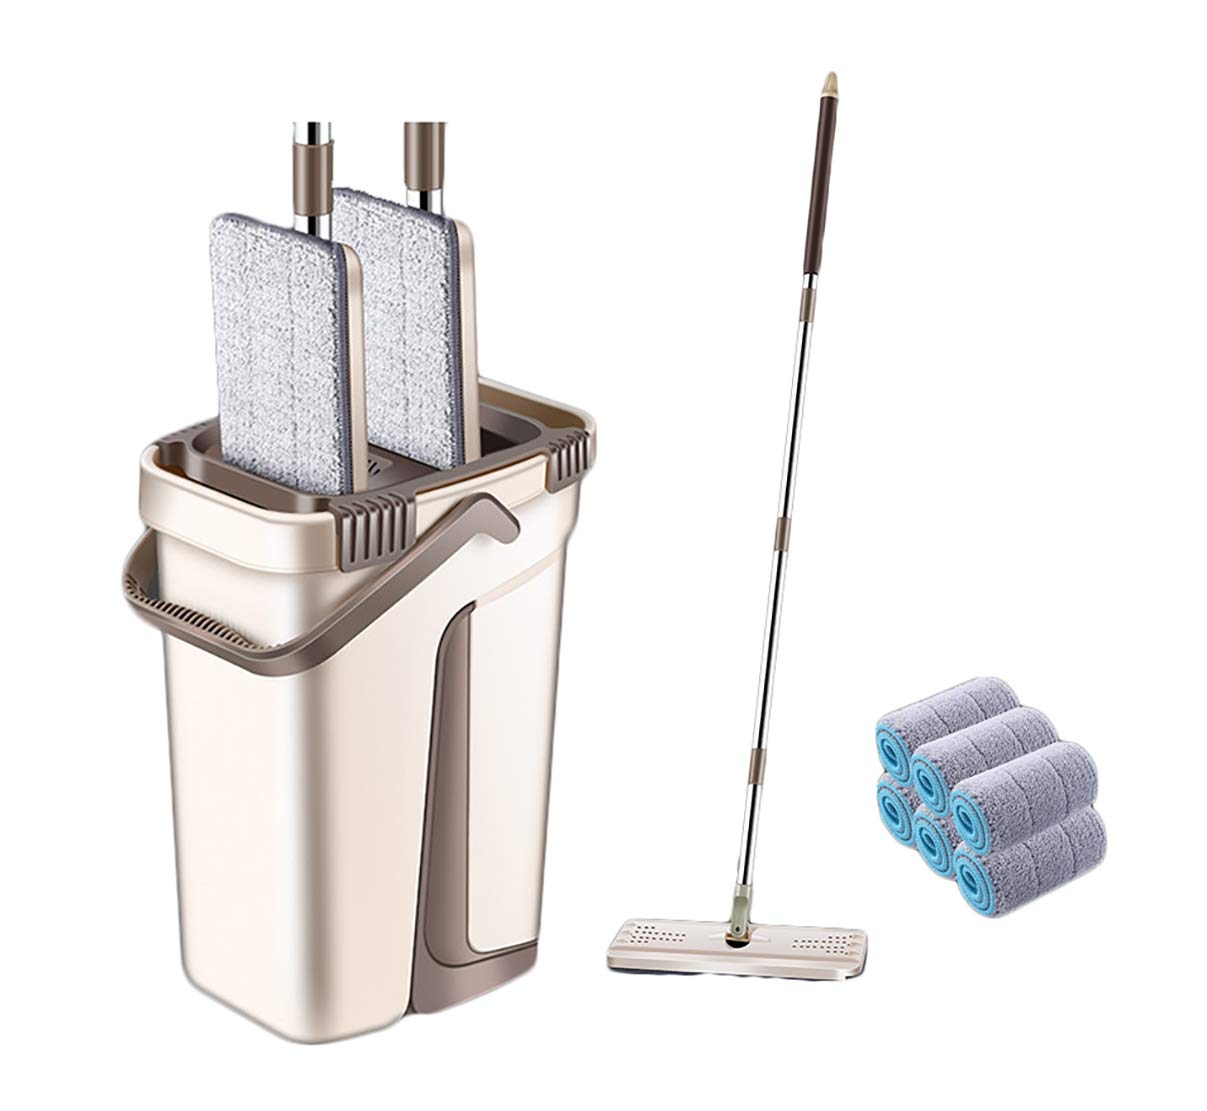 YJJY Flat Mop Bucket Wash Cleaning System - Wet and Dry Mopping Microfiber Flat Mop,1 Reusable Ecofriendly Pads, Floor Cleaning